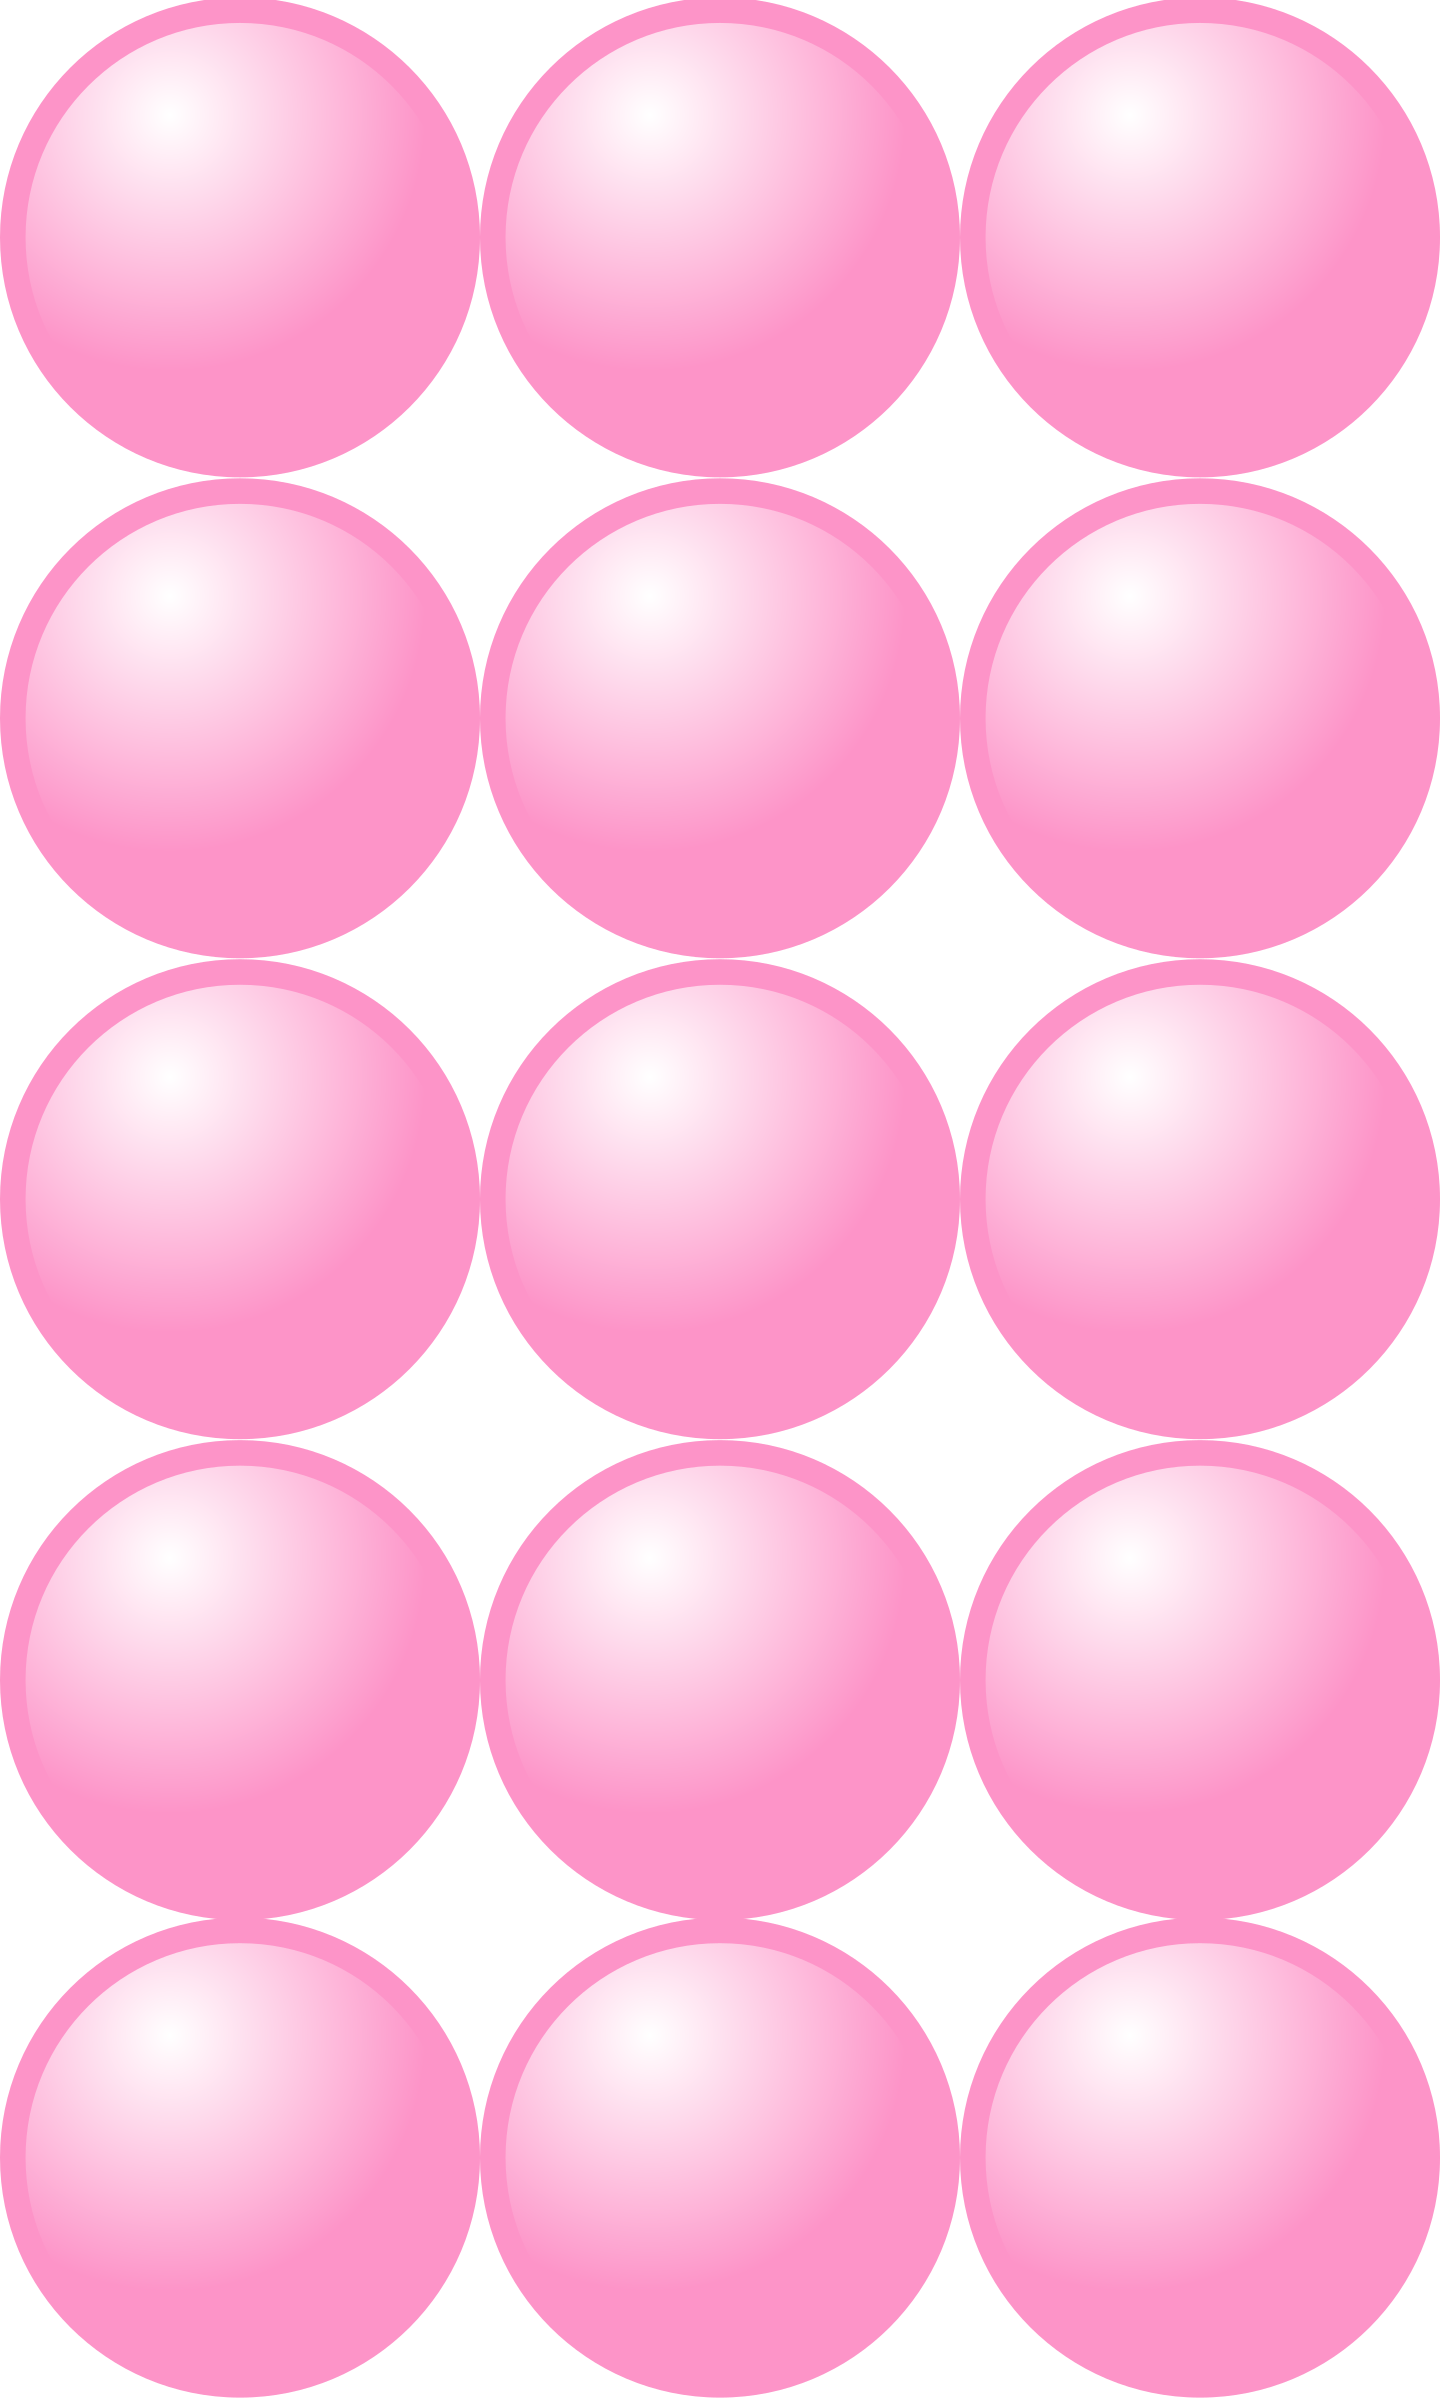 Beads quantitative picture for. Multiplication clipart property multiplication